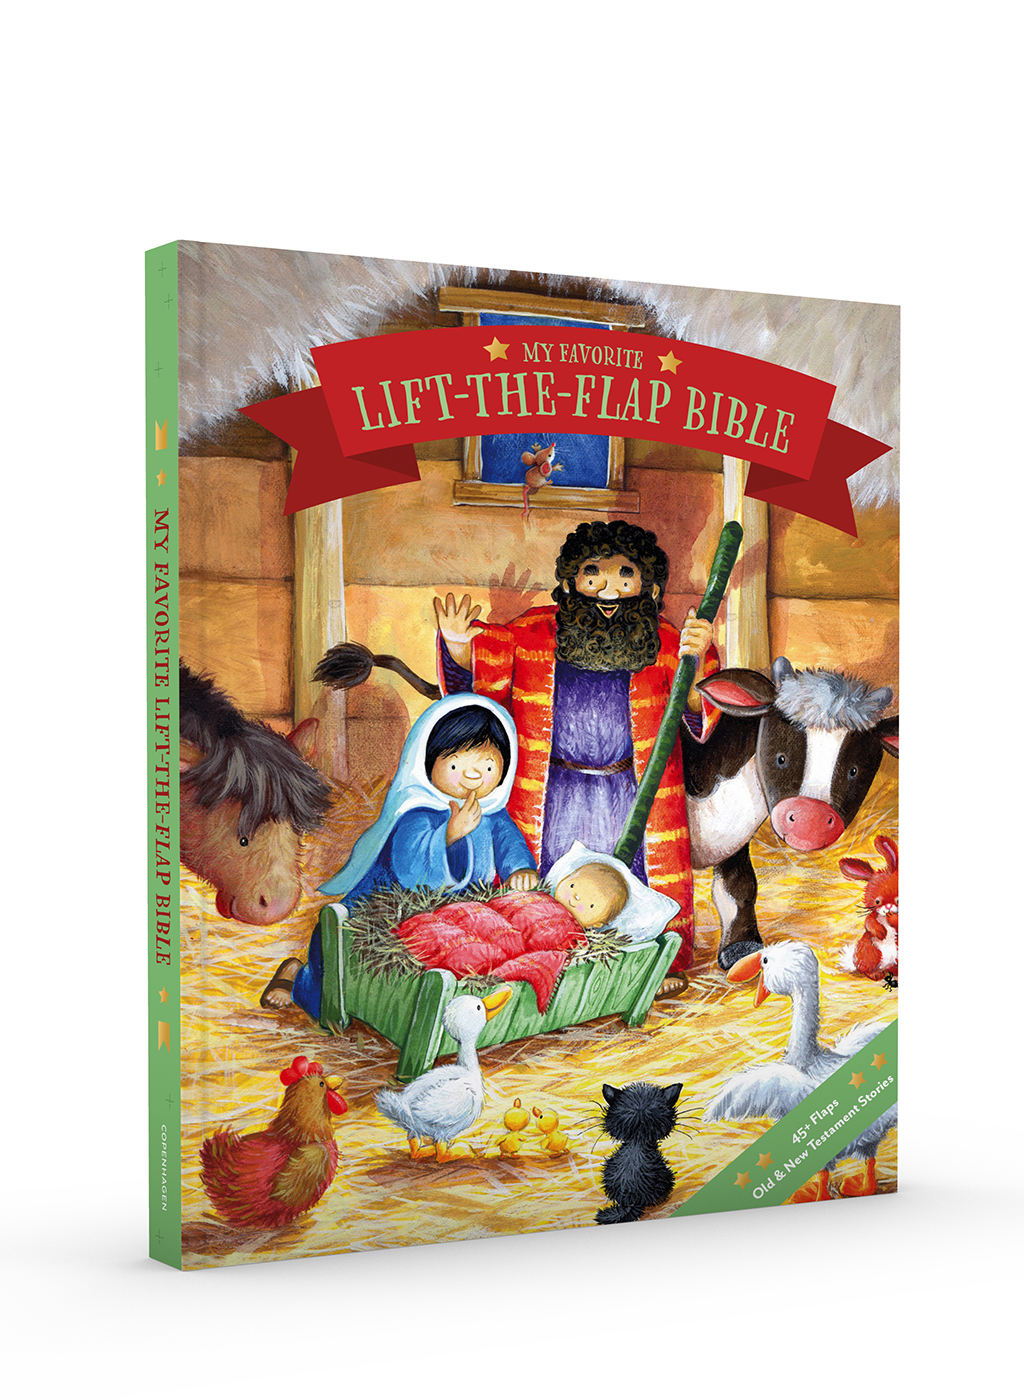 My Favorite Lift-The-Flap Bible